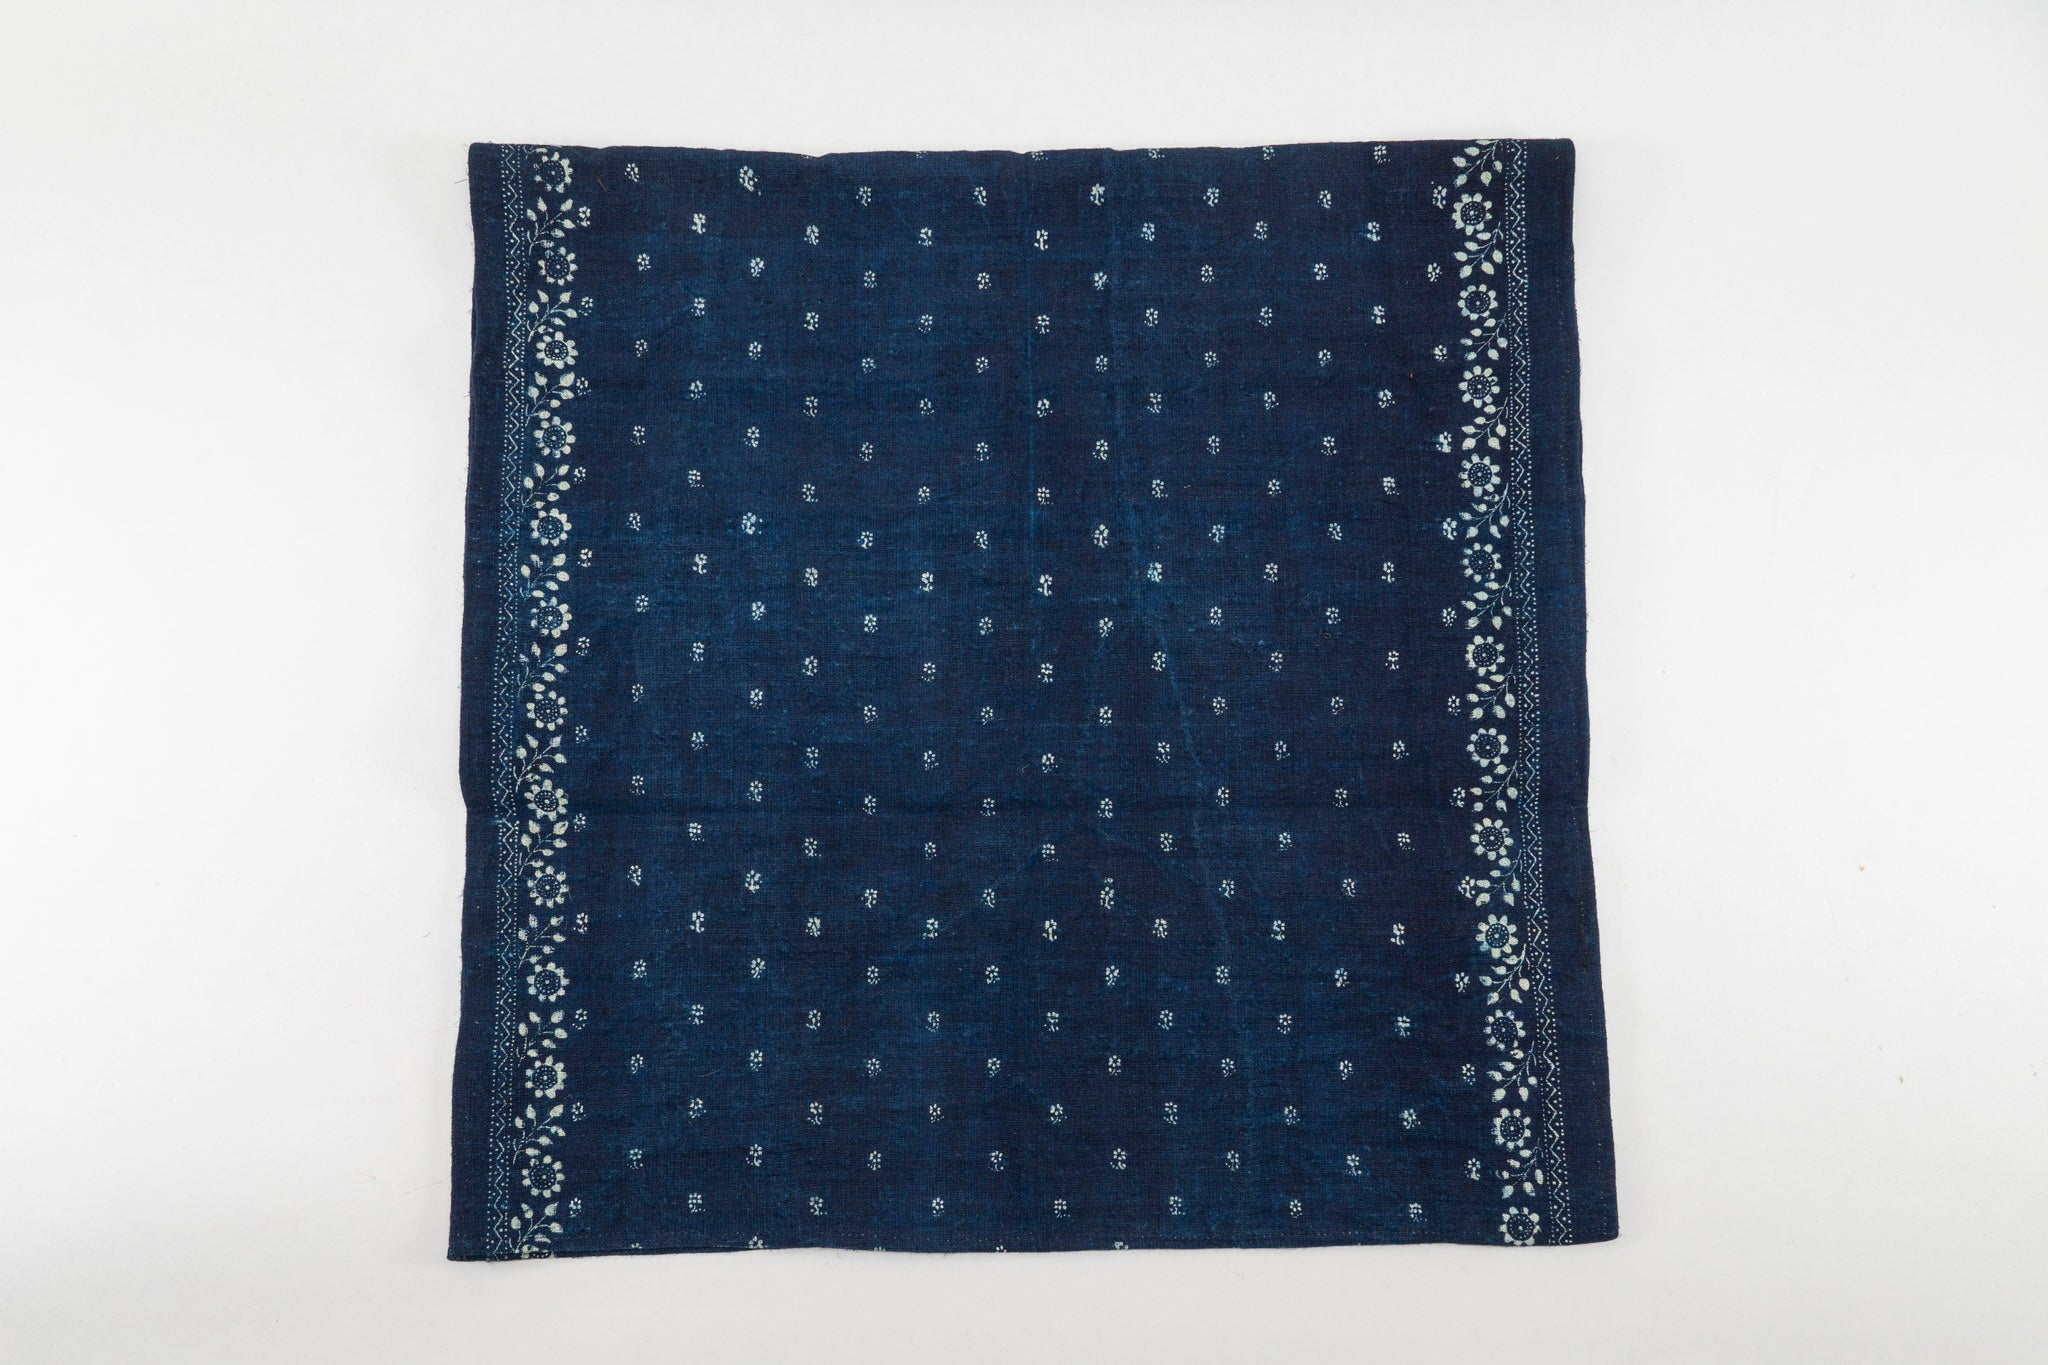 Table runner: Indigo wax resist, handwoven Hungarian hemp